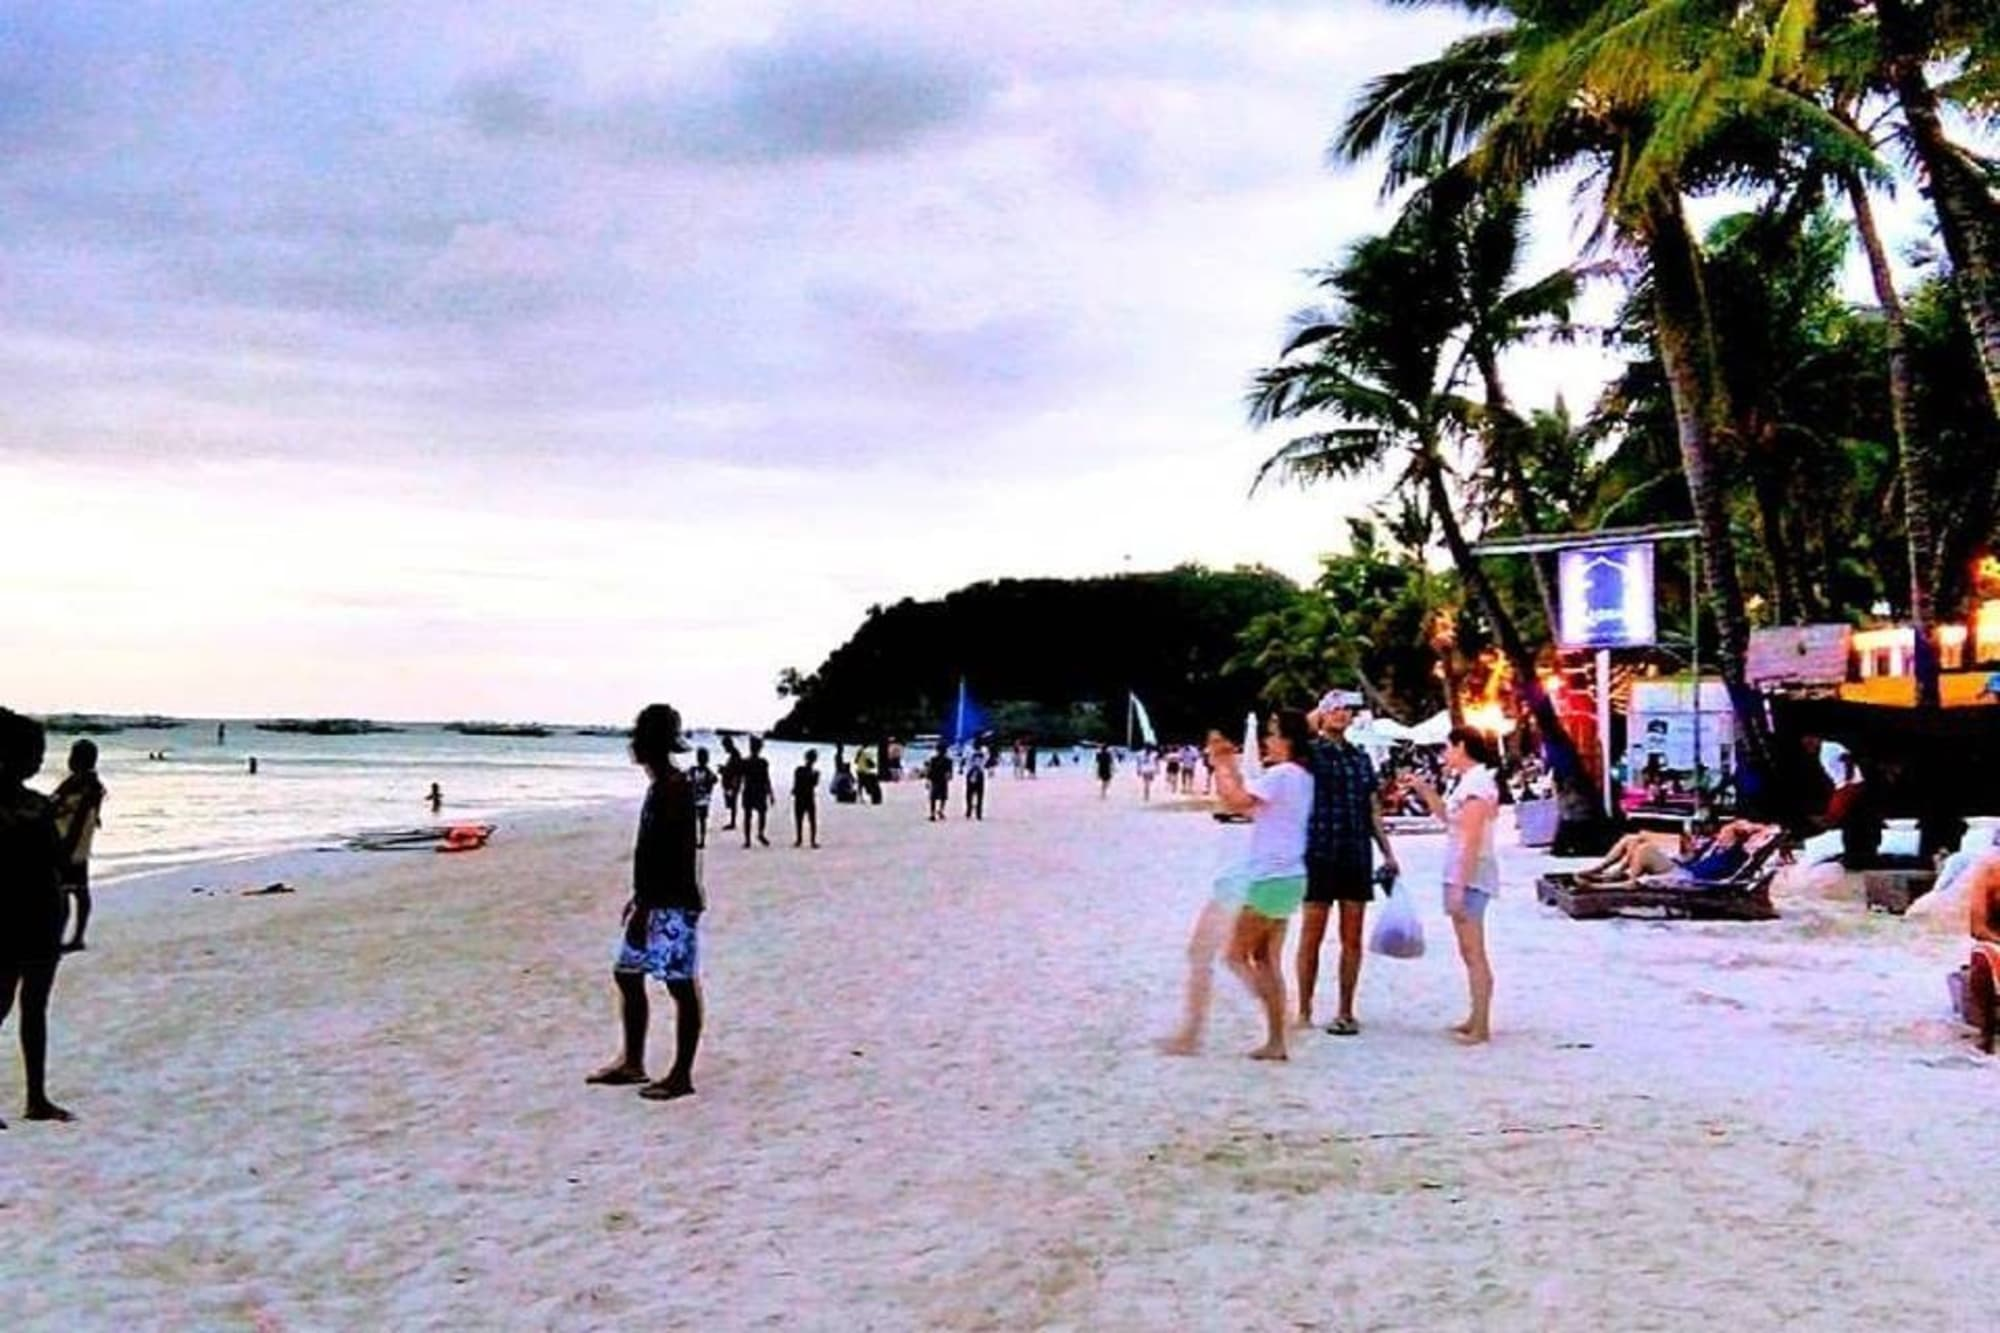 Boracay tourist arrivals over 1M in 1st half of 2017